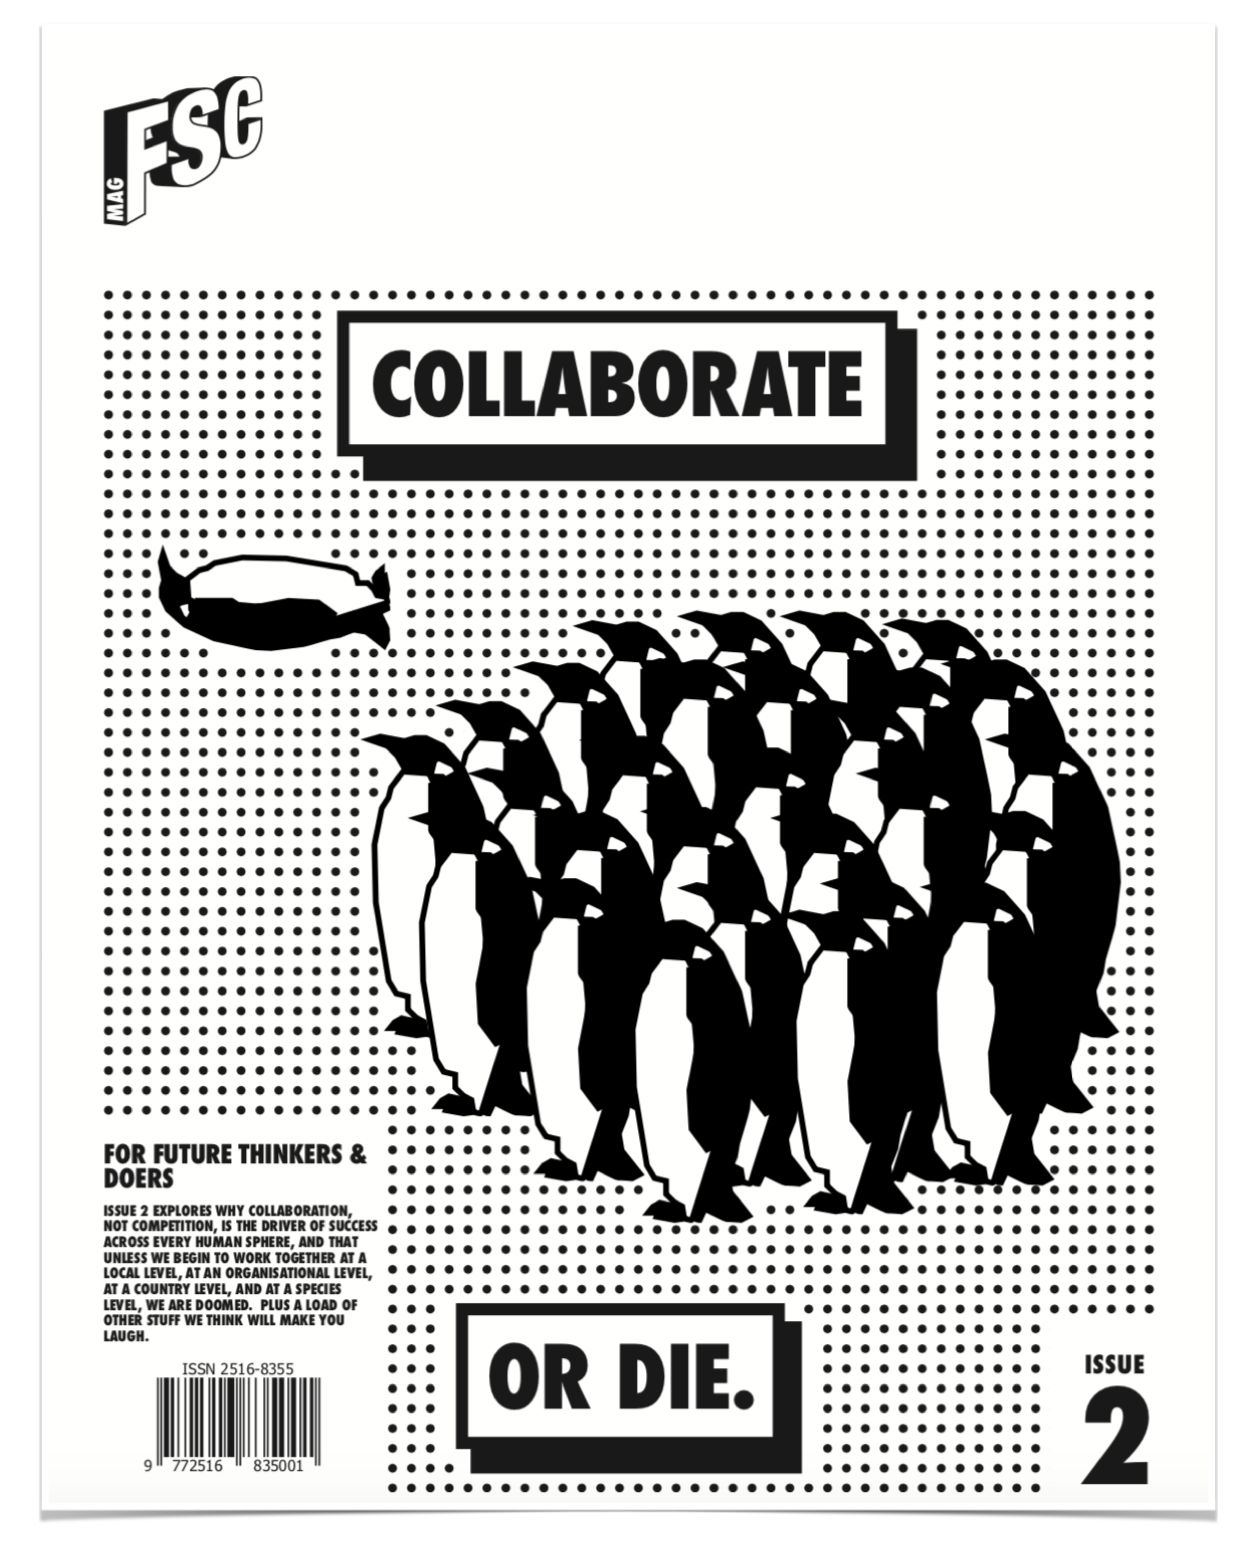 FSC Mag Issue 2 is out in JUNe - Our theme for this issue is collaboration, and how hierarchy, and command & control methods of organisation have led us to the precipice. Unless we begin to work together at a local level, at an organisational level, at a country level, and at a species level, we are doomed. We must collaborate, or else. Plus a load of other stuff we think will make you laugh ('cause we bloody well need it!). Get our last two issues for free here